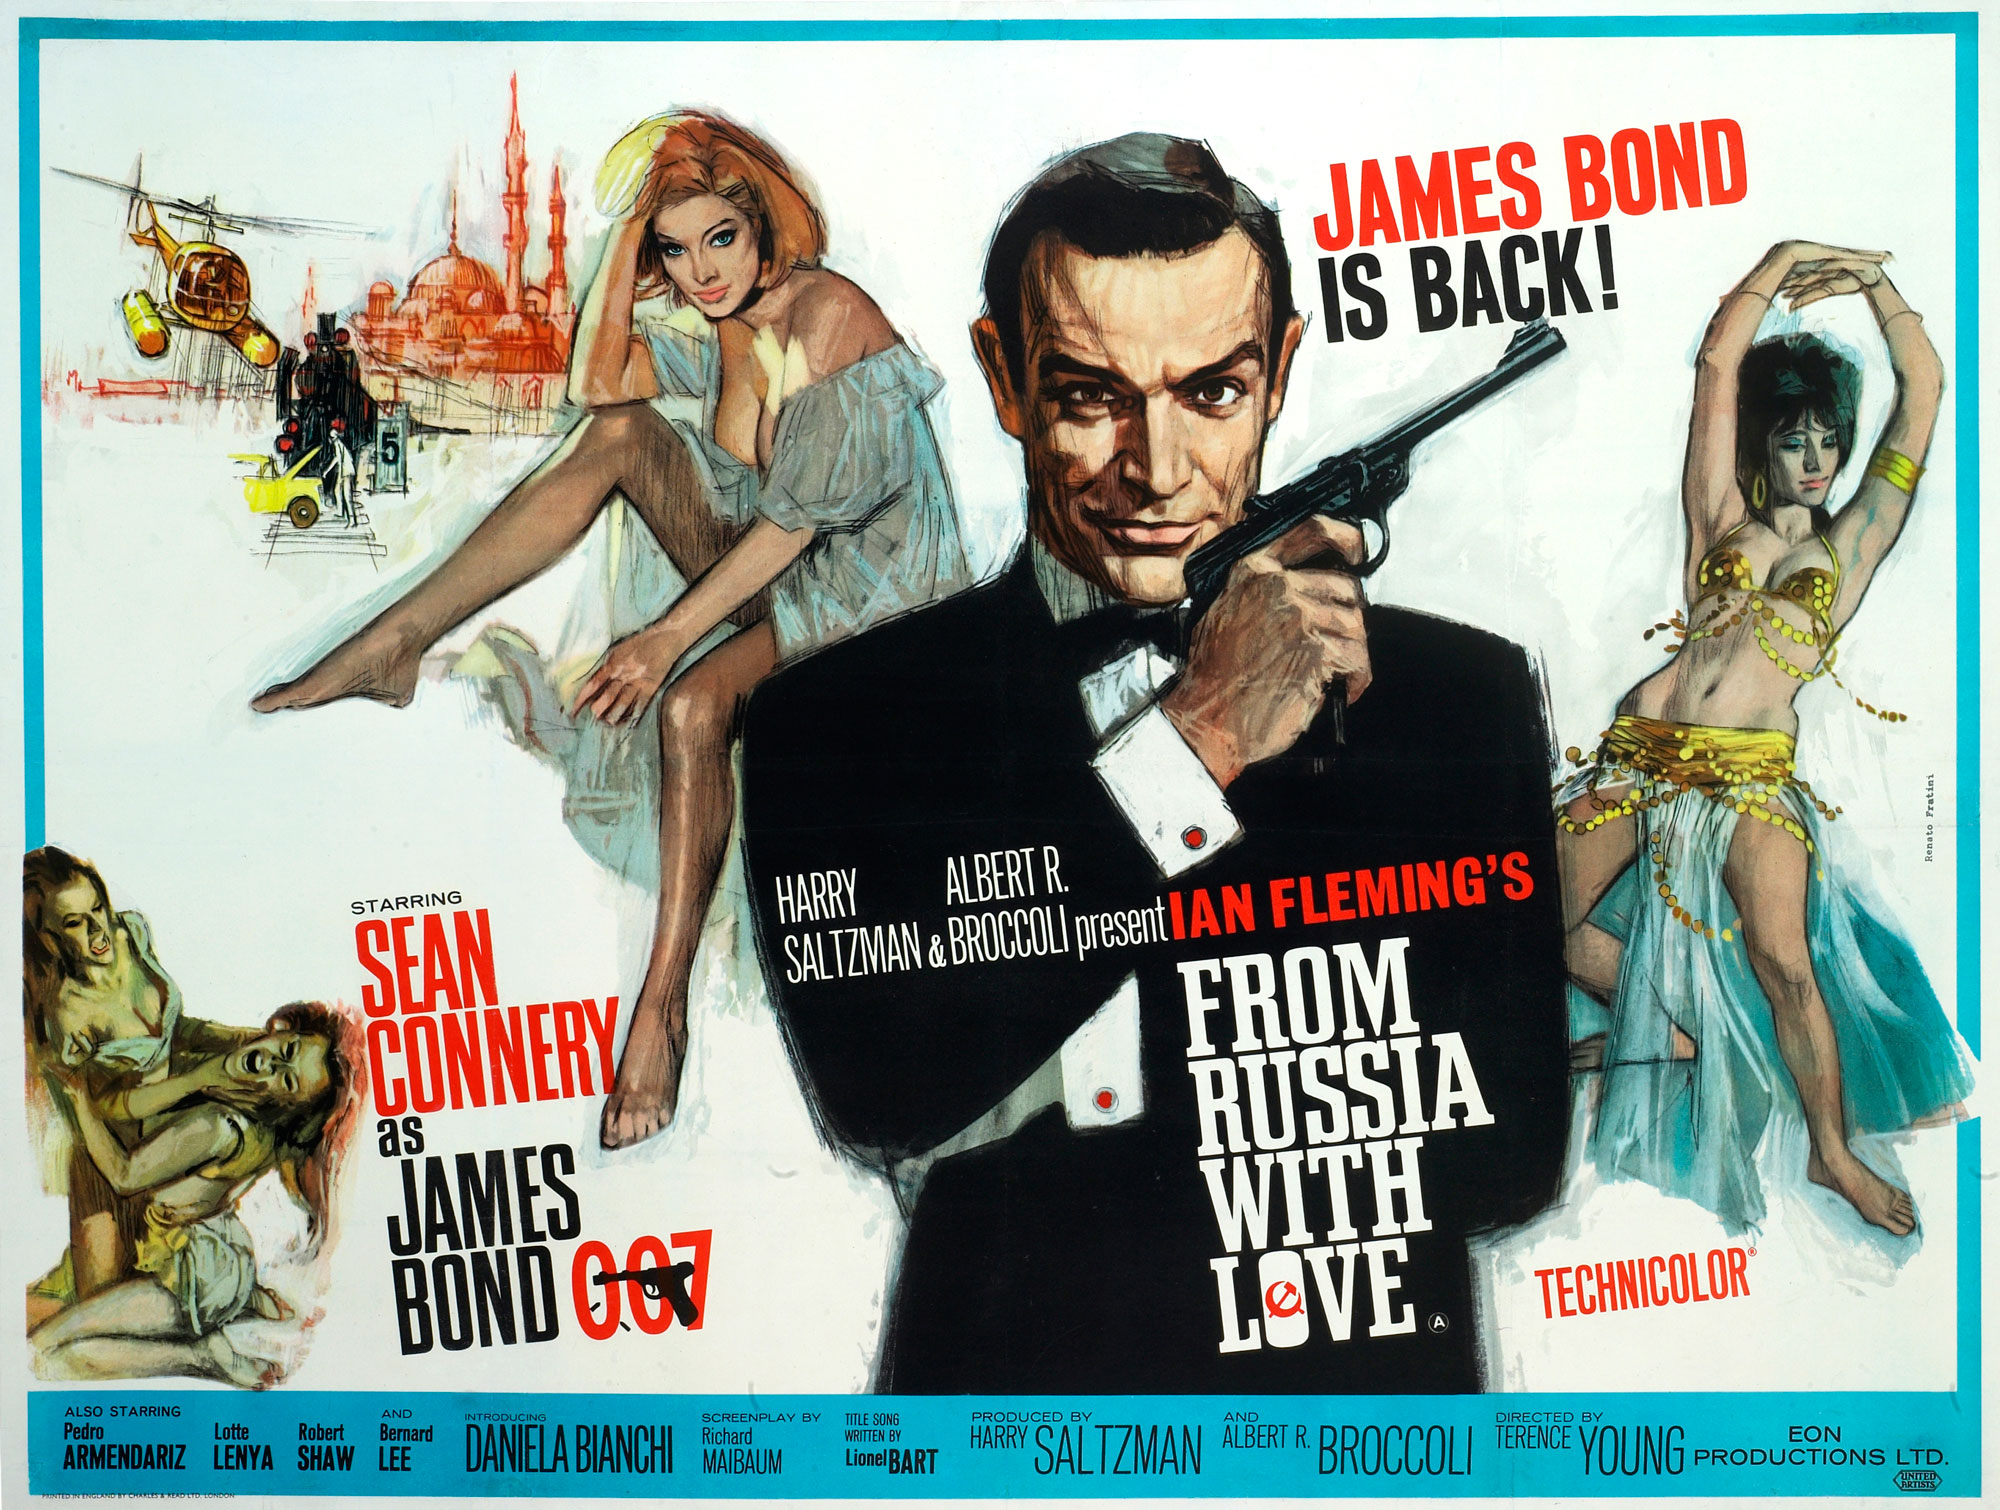 1963: Instead of a Walther PPK, Bond holds a more impressive-looking, long-barreled Walther LP-53 air pistol, which belonged to the photographer. This pose became a famous, instantly recognizable Bond image. The poster was designed by Eddie Paul, with art by Italian film poster artist Renato Fratini.